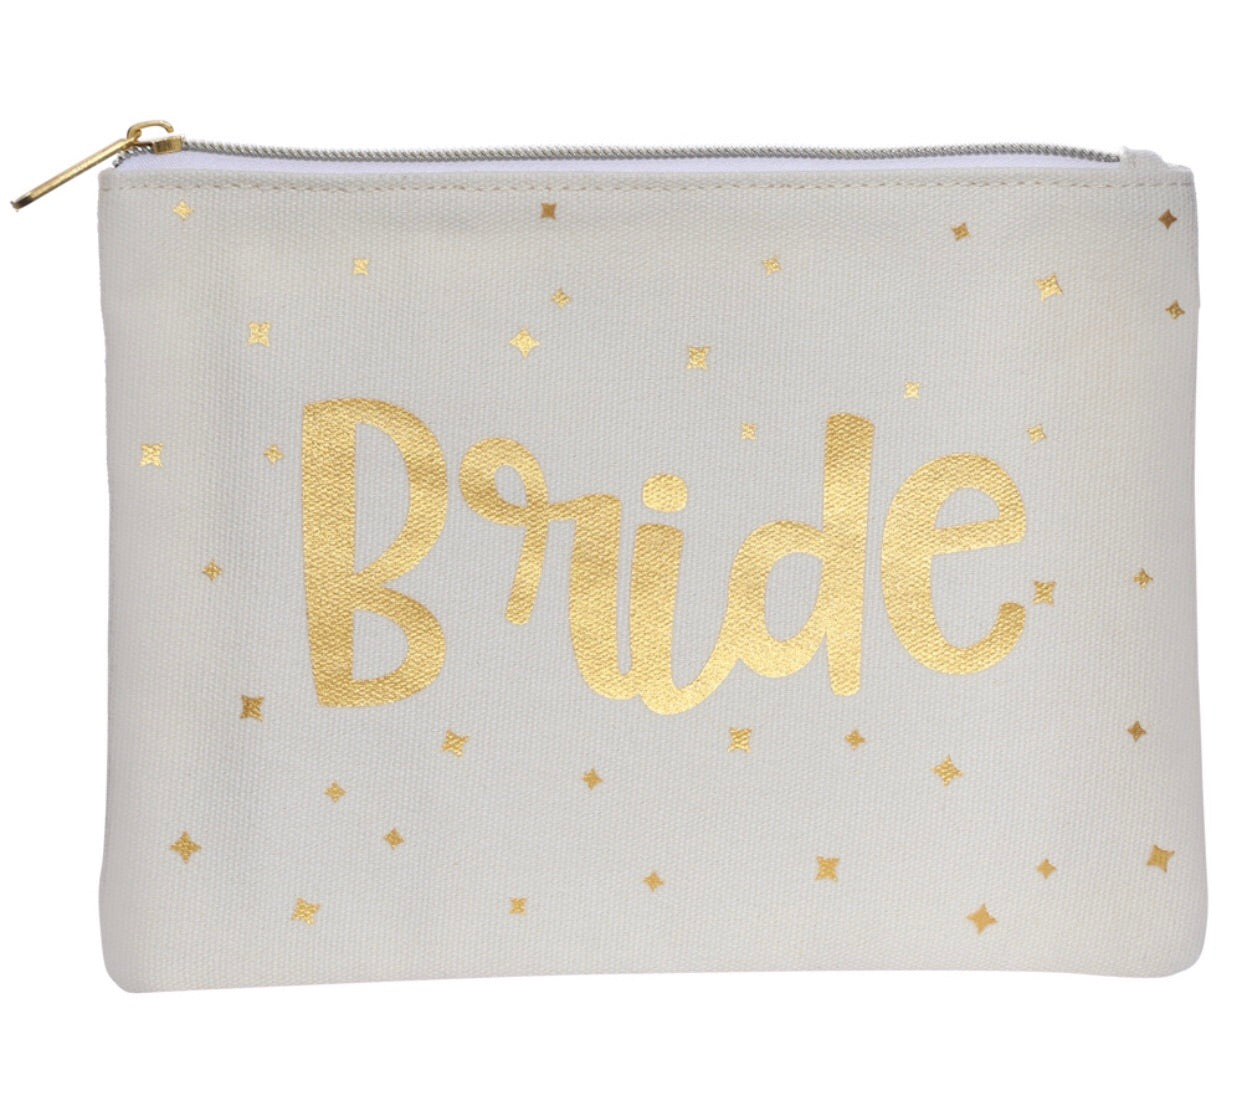 white bride cosmetics bag perfect for the big wedding day